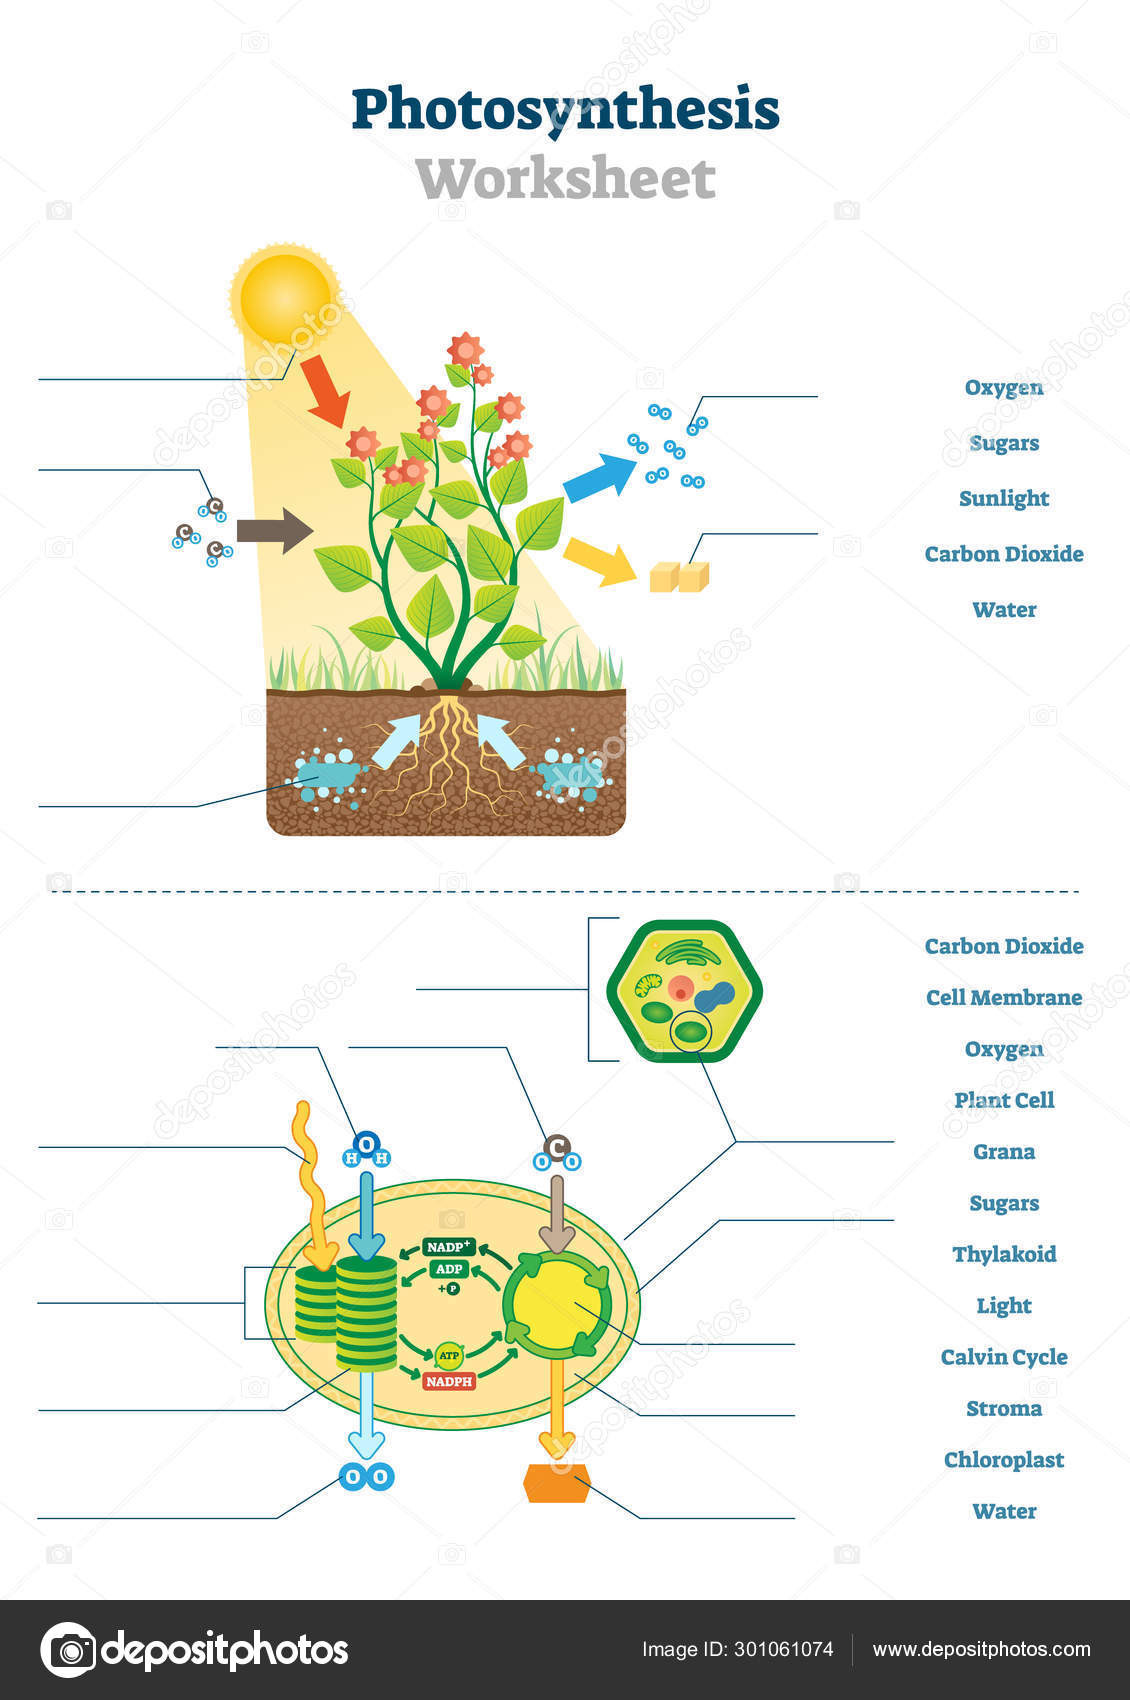 Photosynthesis Worksheet High School Synthesis Worksheet Vector Illustration Blank Oxygen Process Template